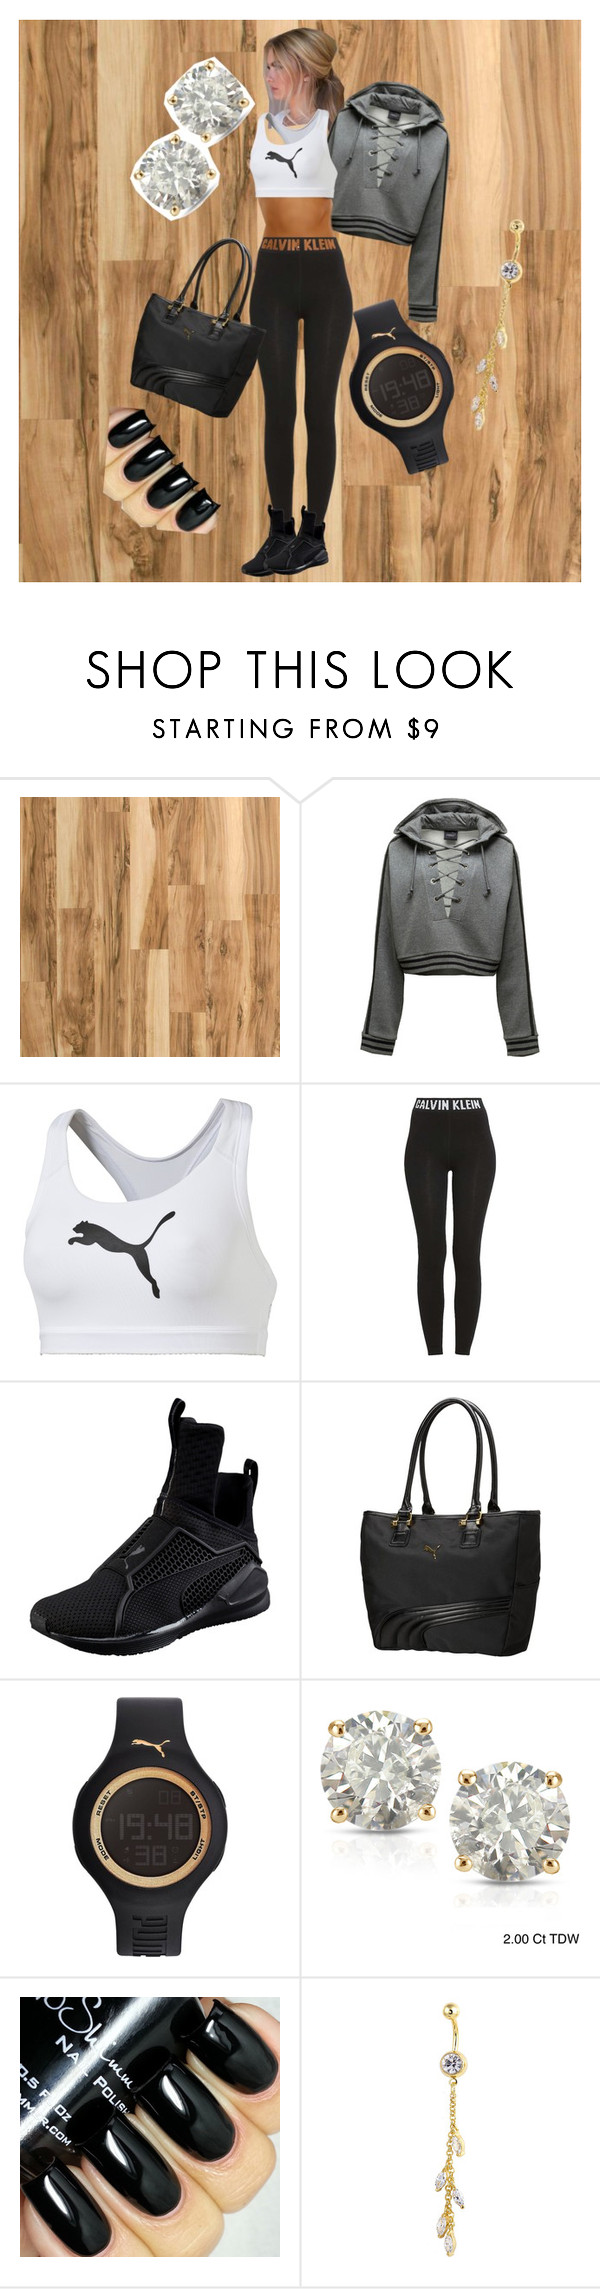 """Be like Ri"" by boopreski ❤ liked on Polyvore featuring Home Decorators Collection, Puma, Calvin Klein and Auriya"